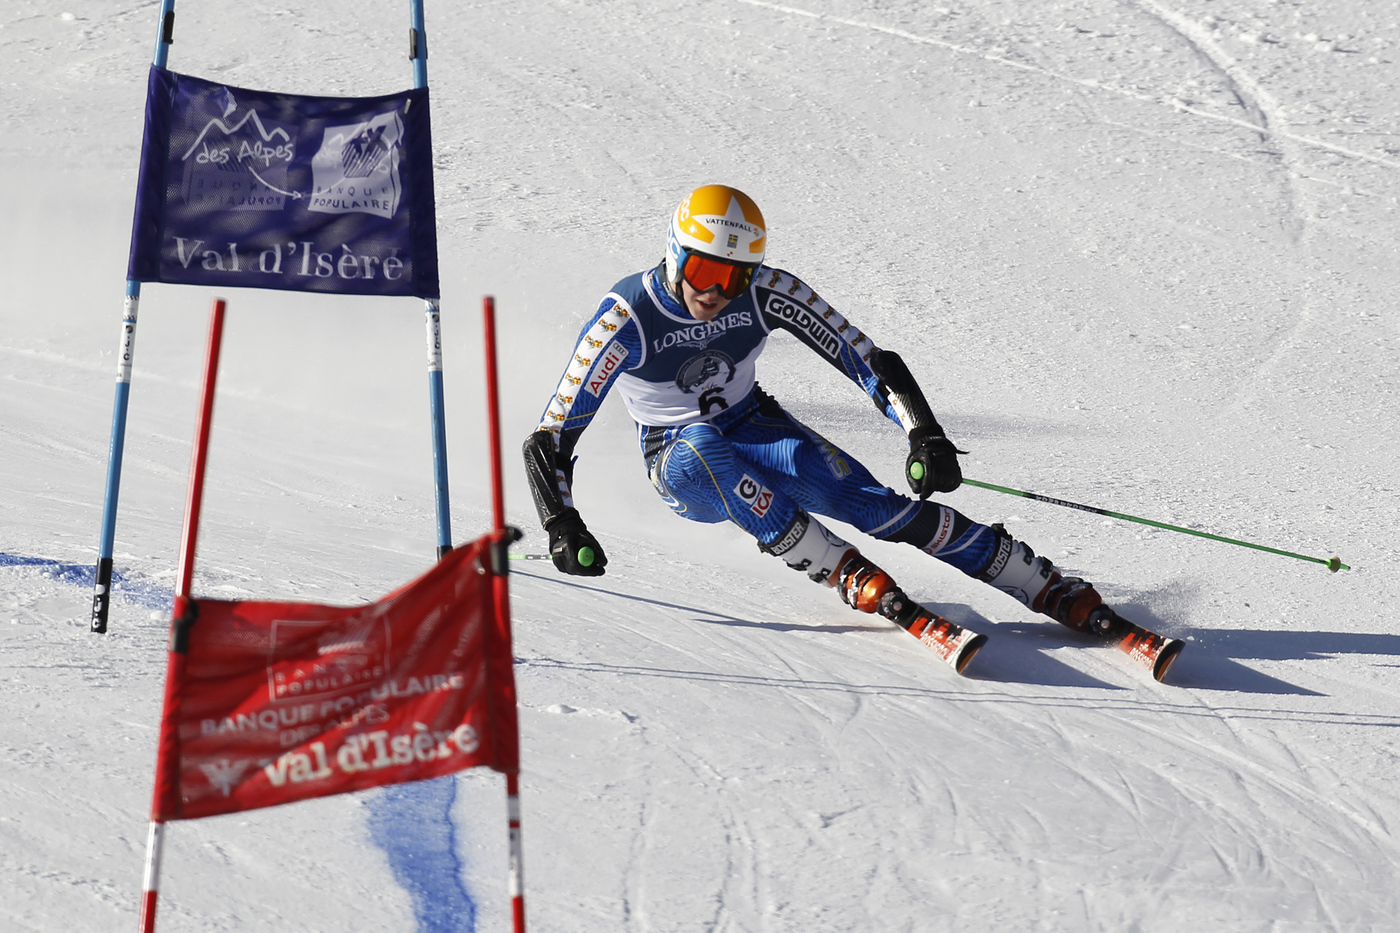 Longines Alpine Skiing Event: The Longines Future Ski Champion 2013 18